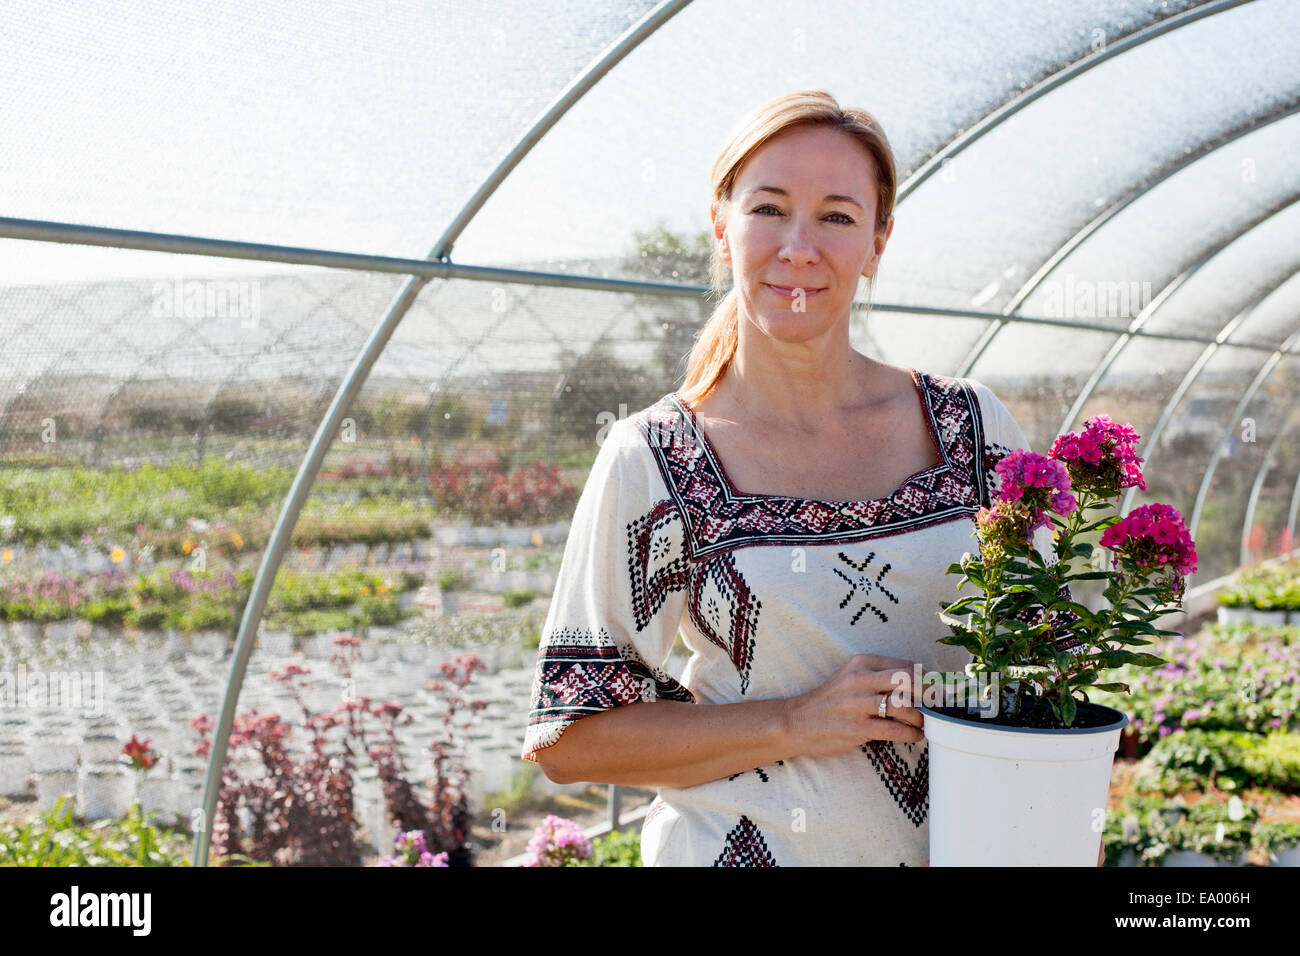 Portrait of mature female customer holding potted plant in plant nursery polytunnel Photo Stock